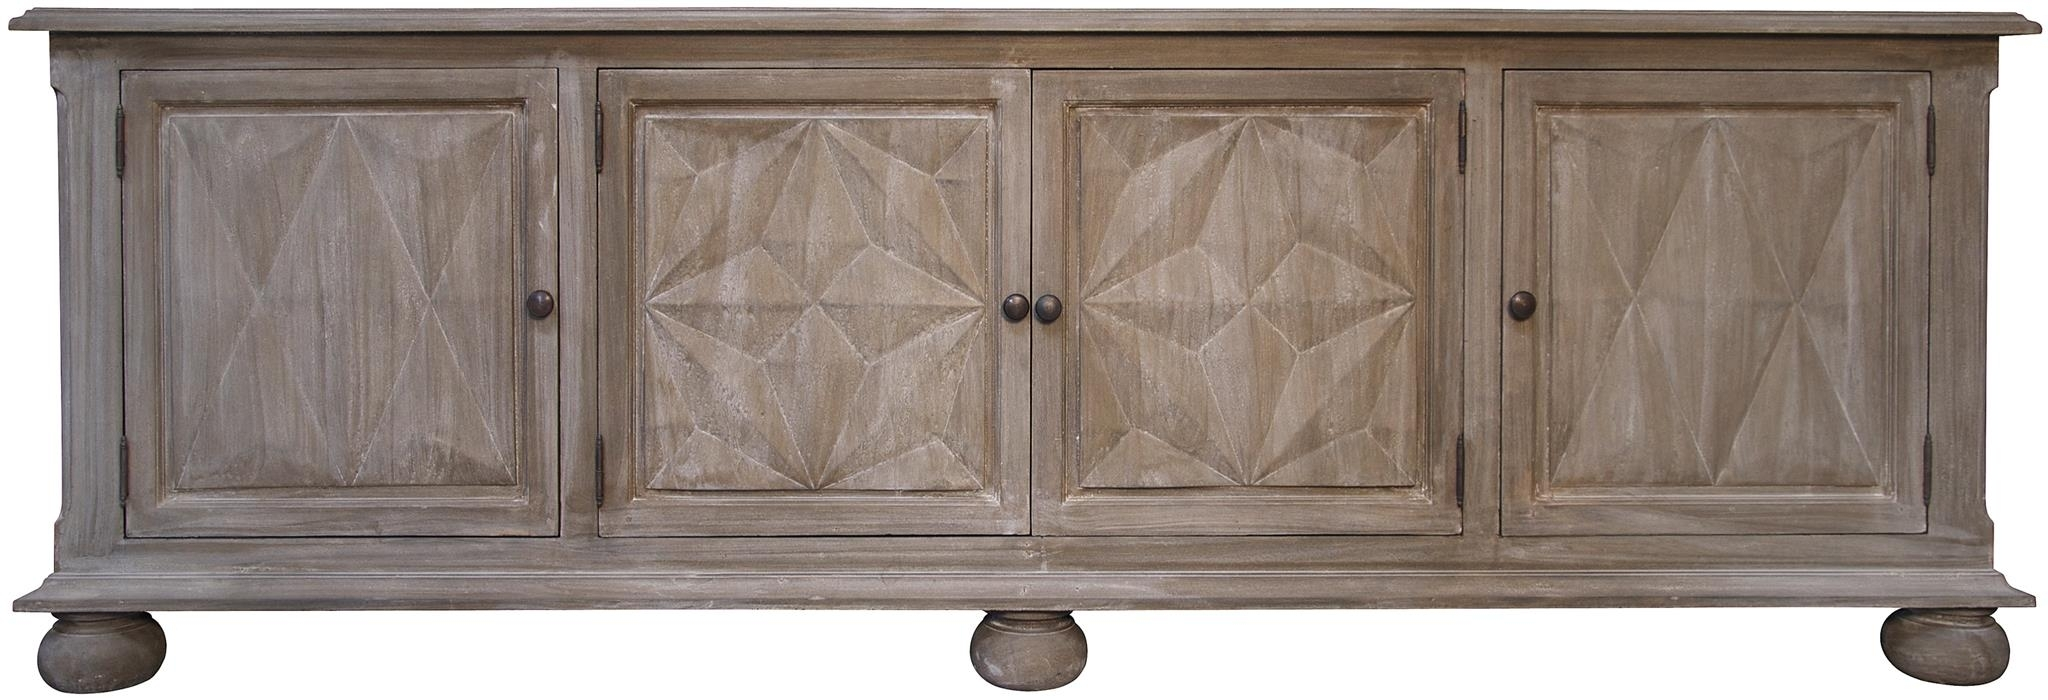 Cabinets, Consoles & Sofa Tables | Htgt Furniture In Most Recent Gunmetal Perforated Brass Sideboards (#6 of 20)